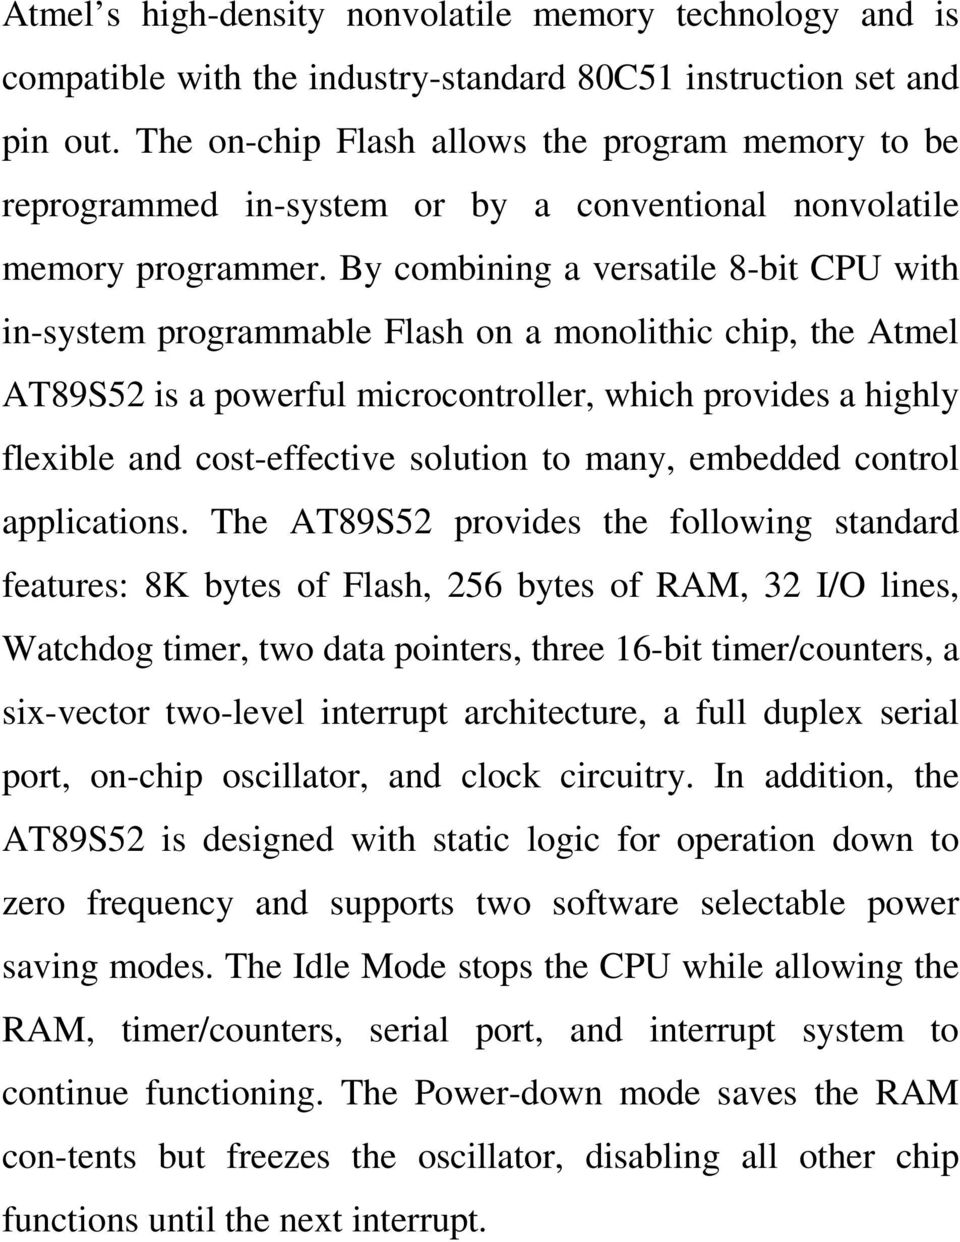 By combining a versatile 8-bit CPU with in-system programmable Flash on a monolithic chip, the Atmel AT89S52 is a powerful microcontroller, which provides a highly flexible and cost-effective